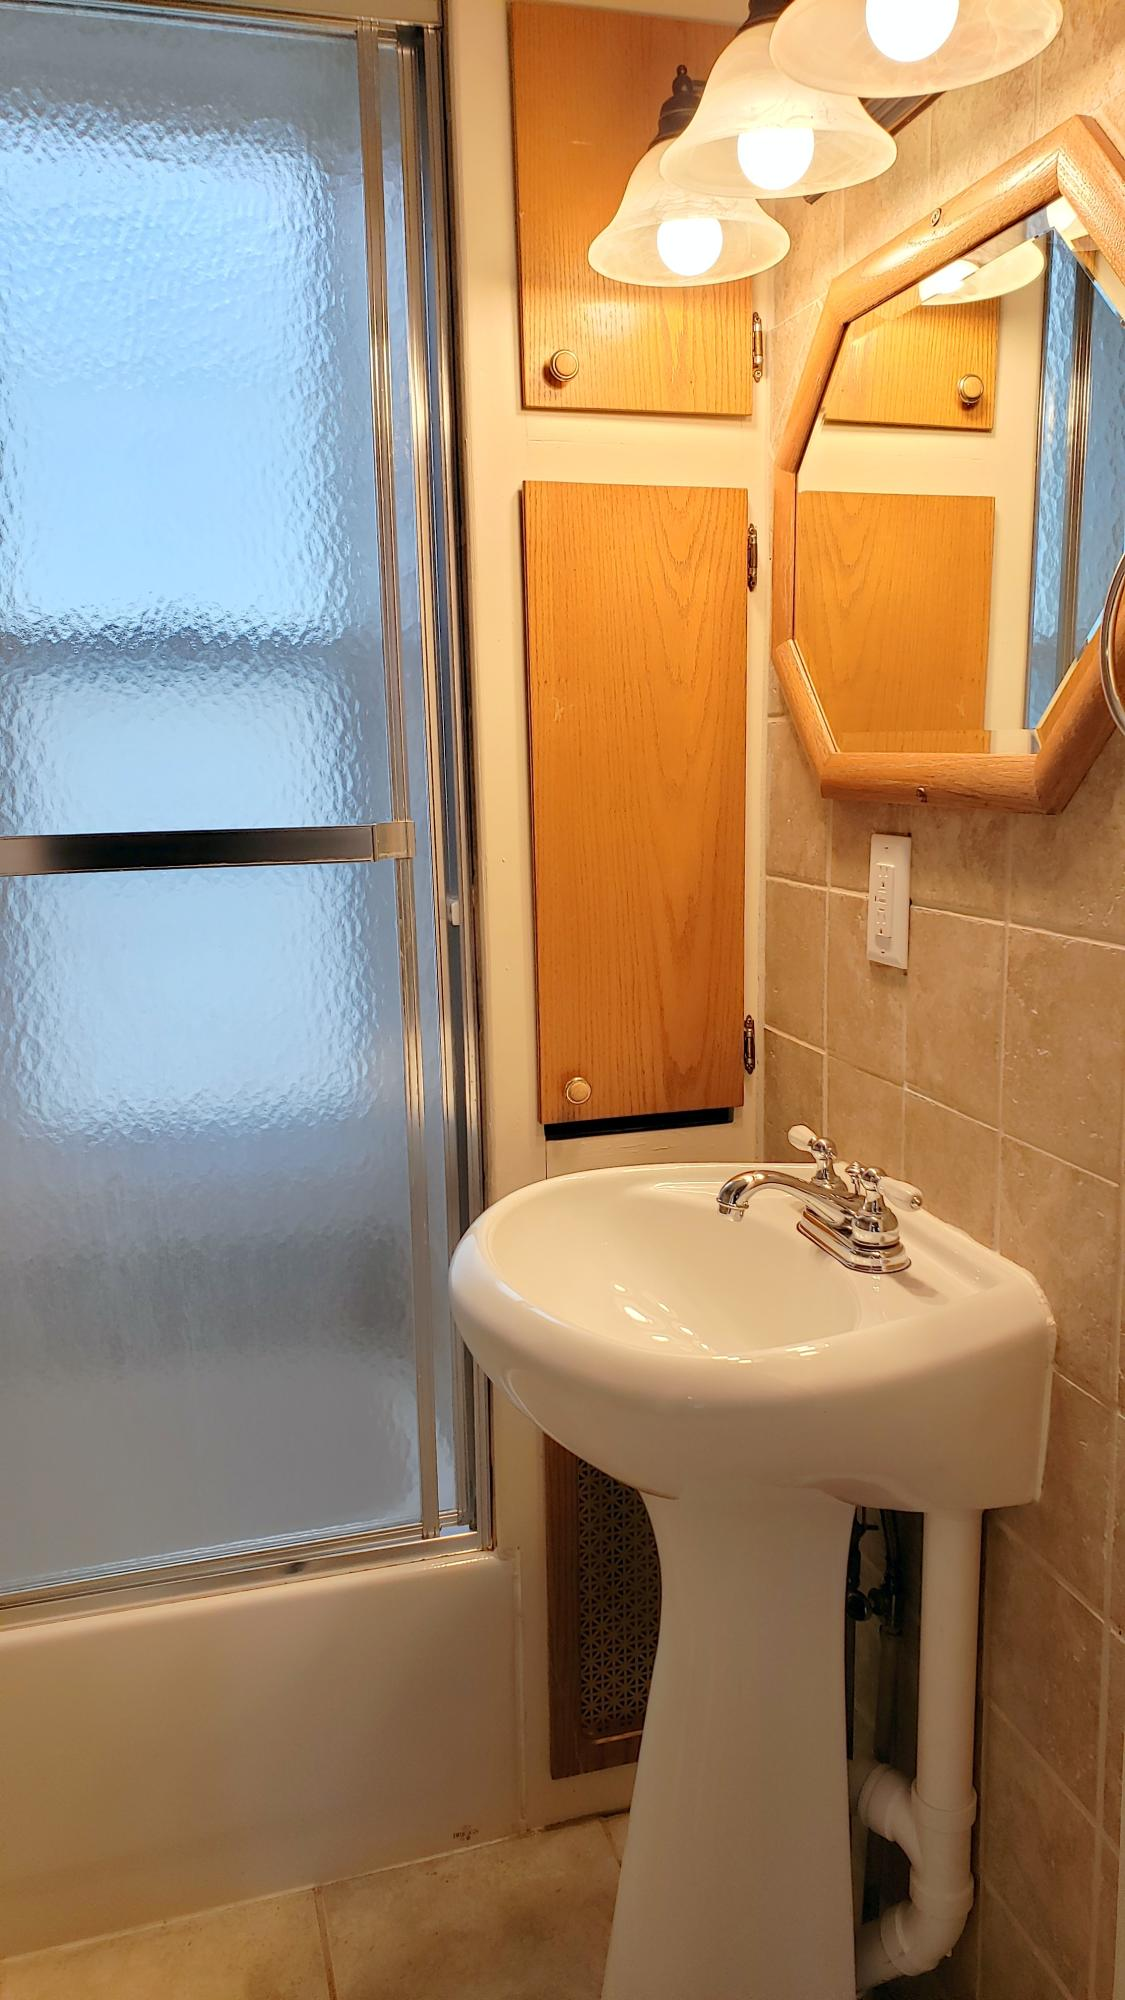 506 65th St, Kenosha, Wisconsin 53143, 2 Bedrooms Bedrooms, 4 Rooms Rooms,1 BathroomBathrooms,Two-Family,For Sale,65th St,1,1715659